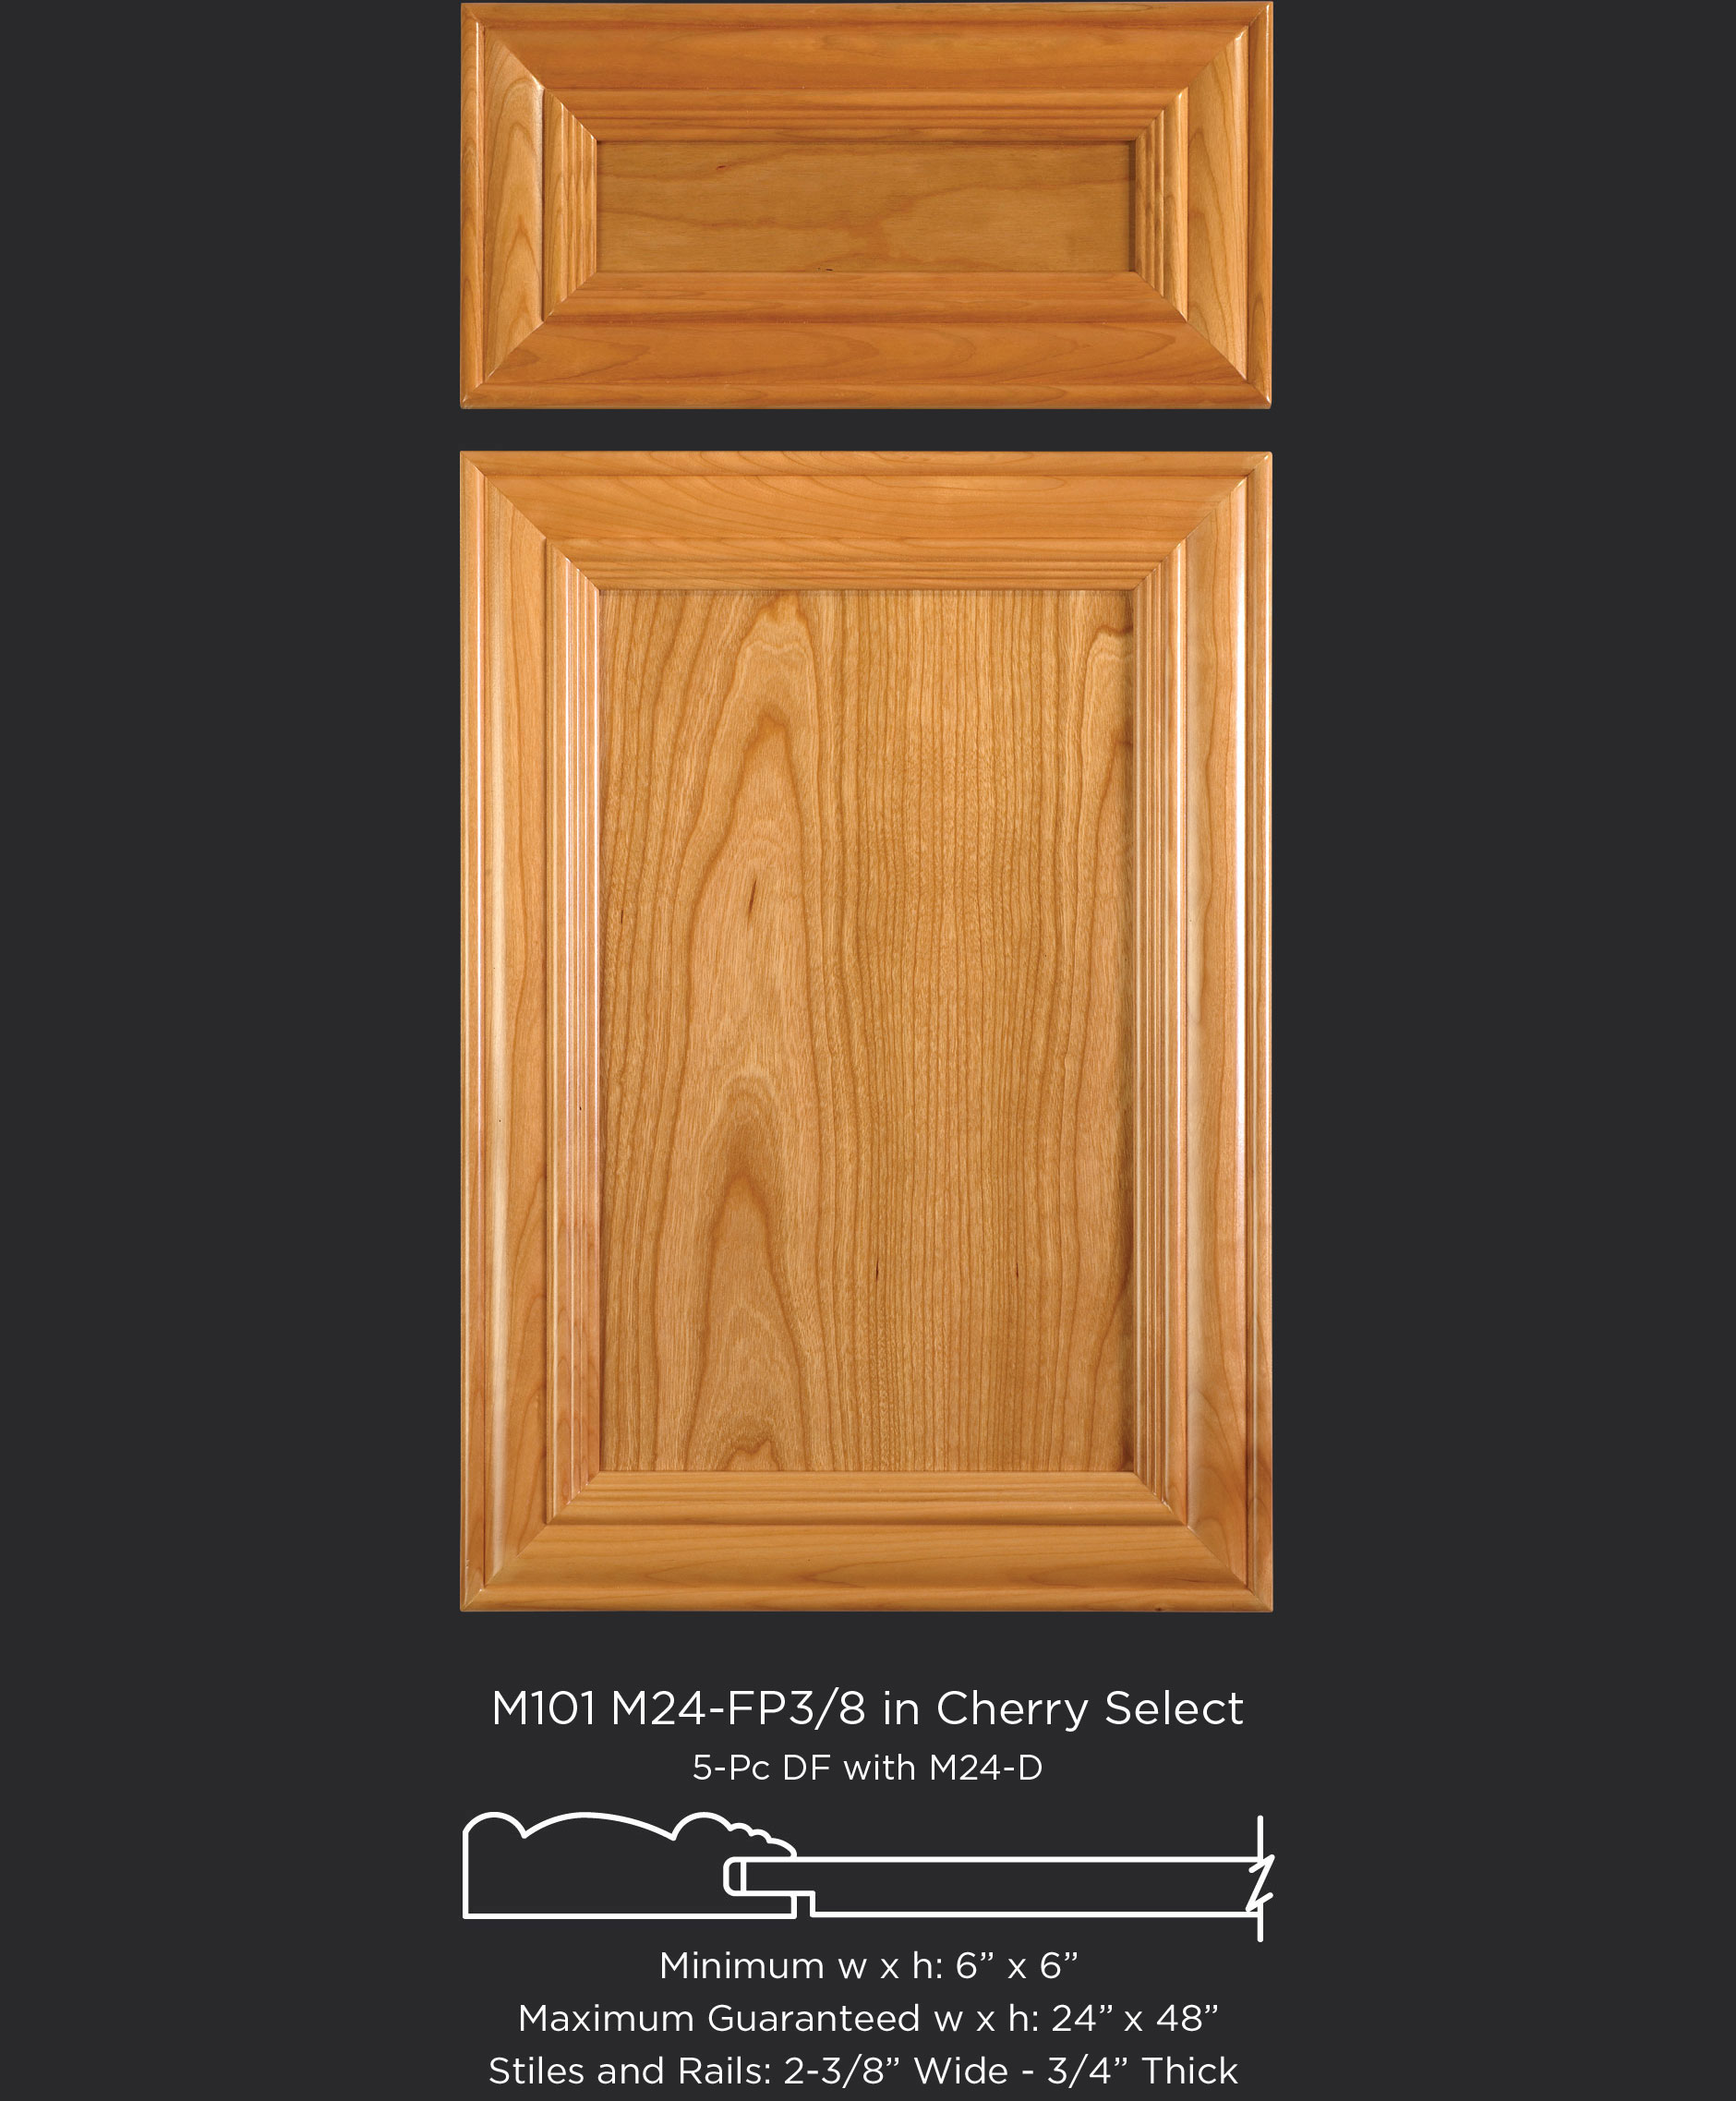 Mitered Cabinet Door M101 M24-FP3/8 in Cherry, Select and standard 5-piece drawer front